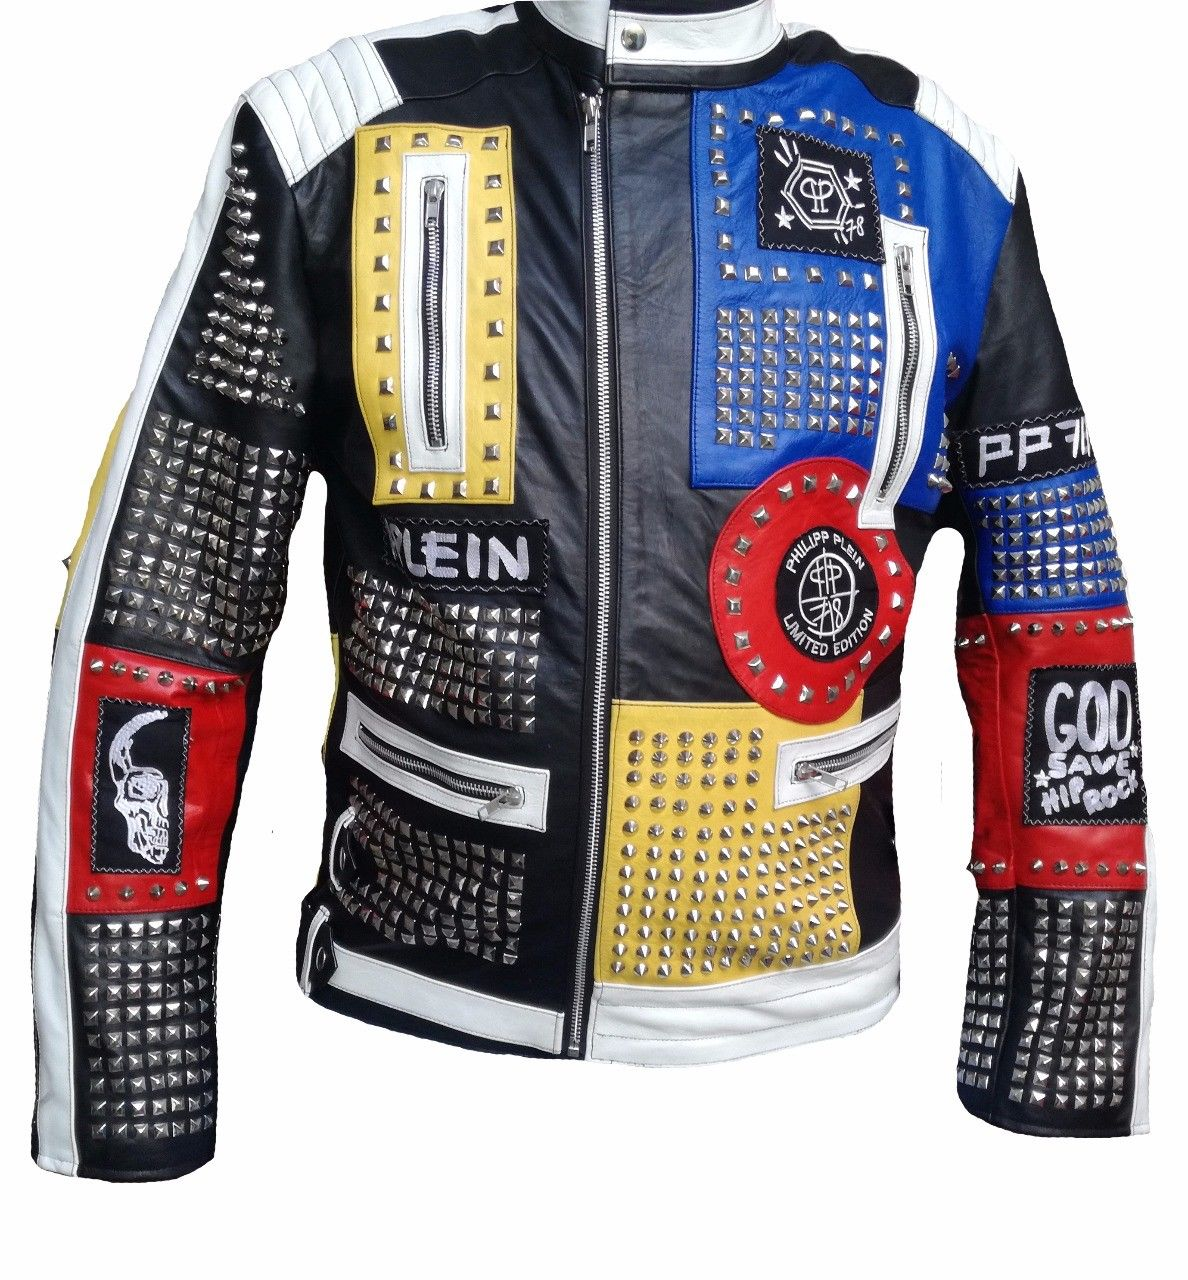 MEN ROCK PUNK MULTICOLOR STUDDED EMBROIDERY PATCHES LEATHER COAT JACKET